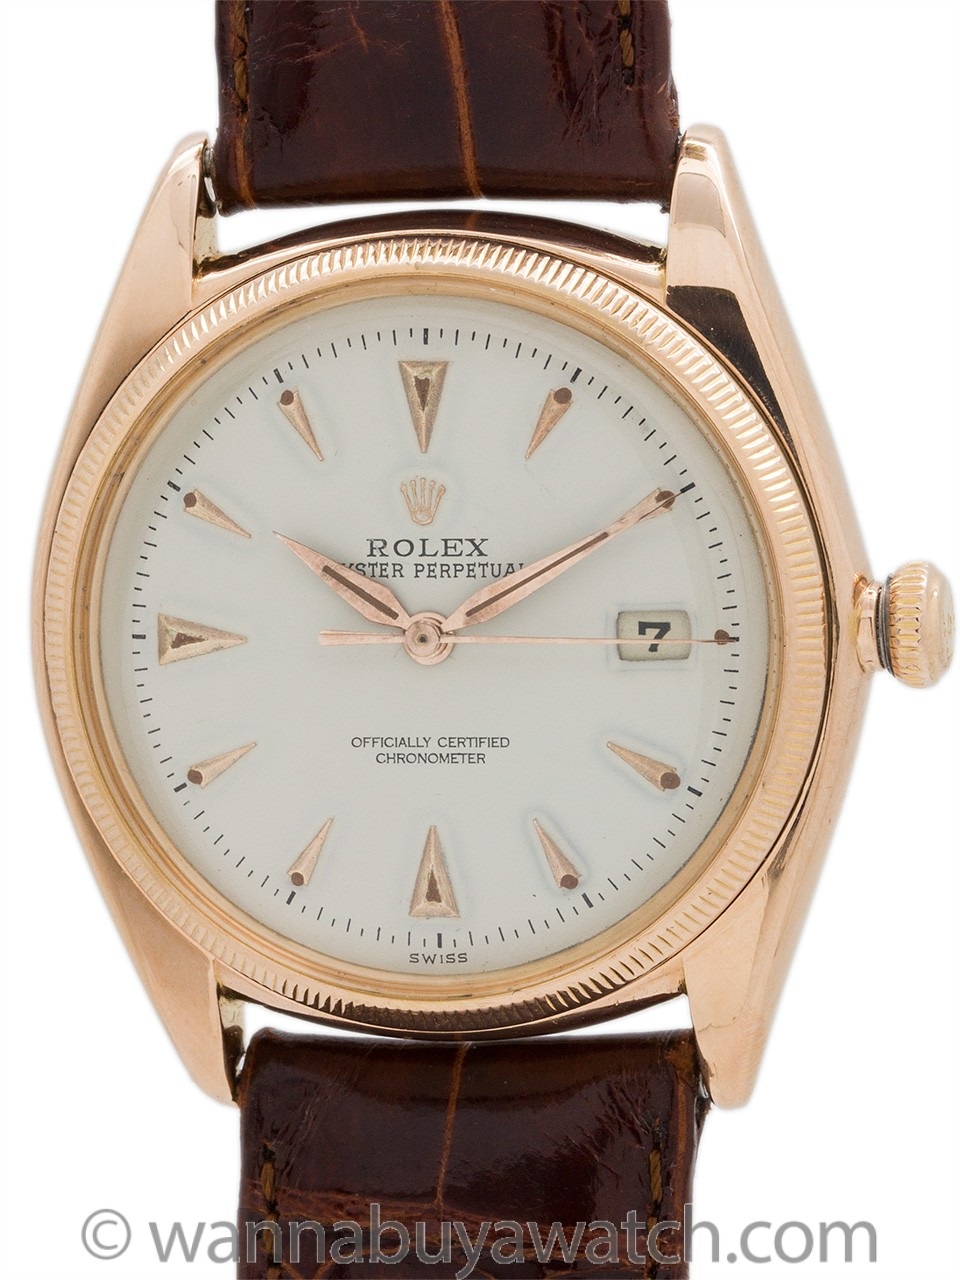 Rolex Datejust ref 4467 18K Rose Gold circa 1957